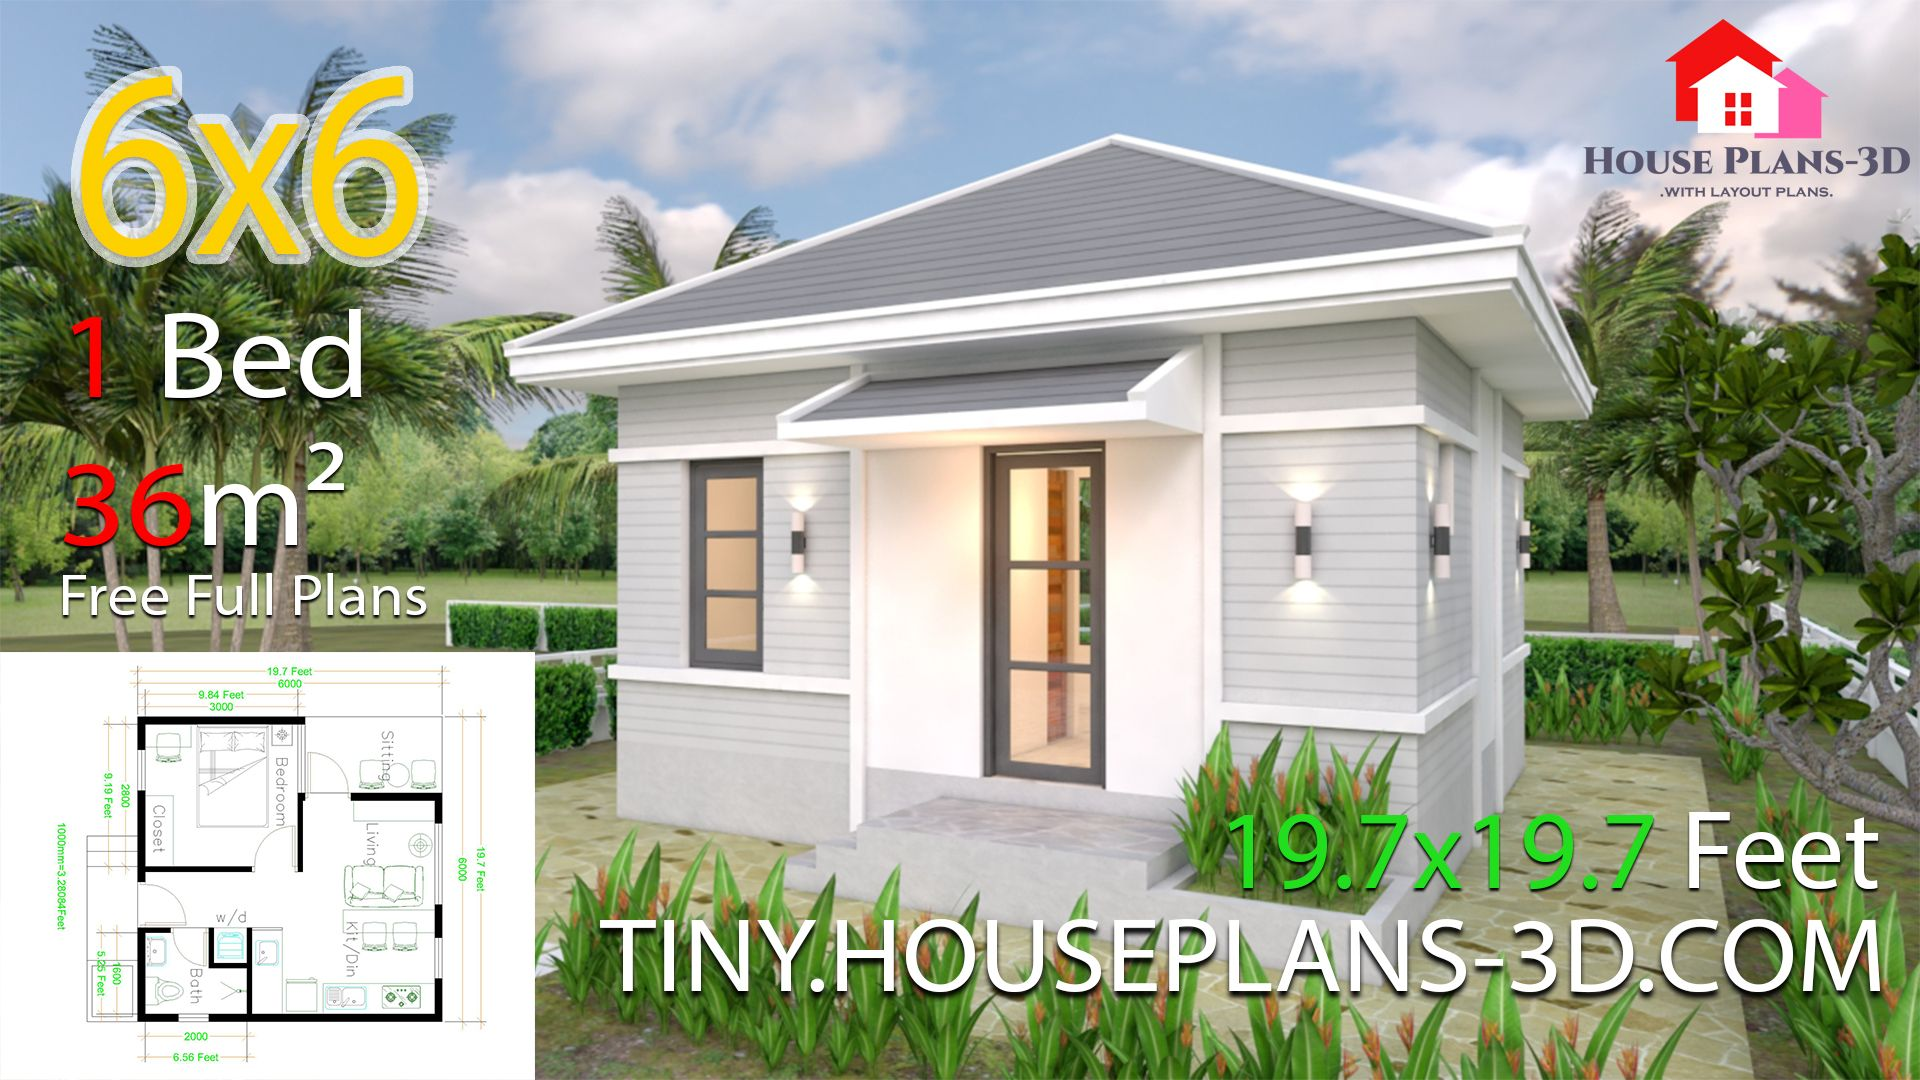 Small House Plans 5x5 with One Bedroom Hip Roof - Tiny House Plans